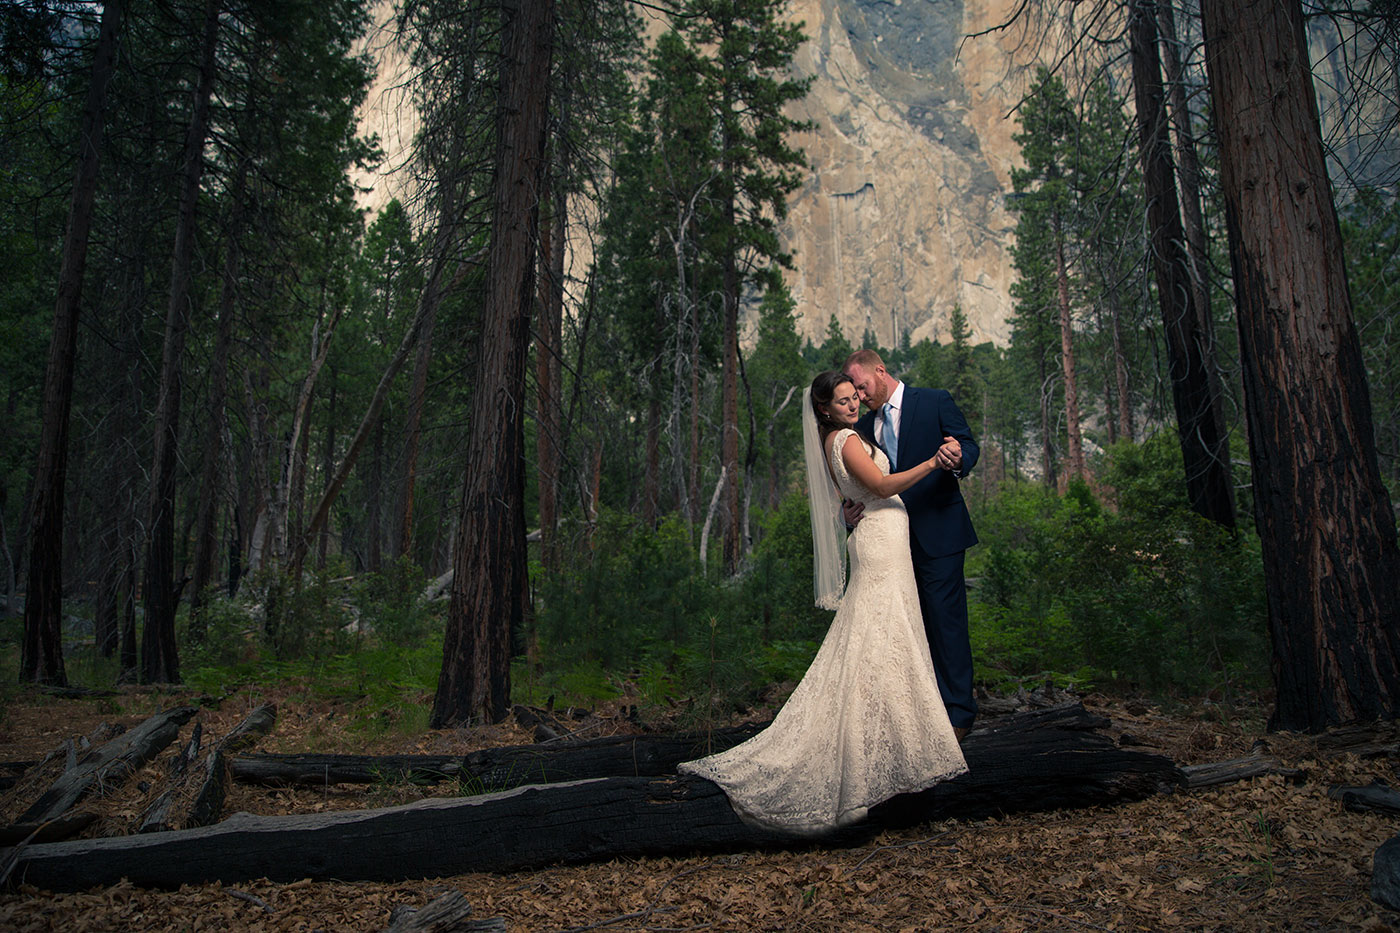 wedding in yosemite national park